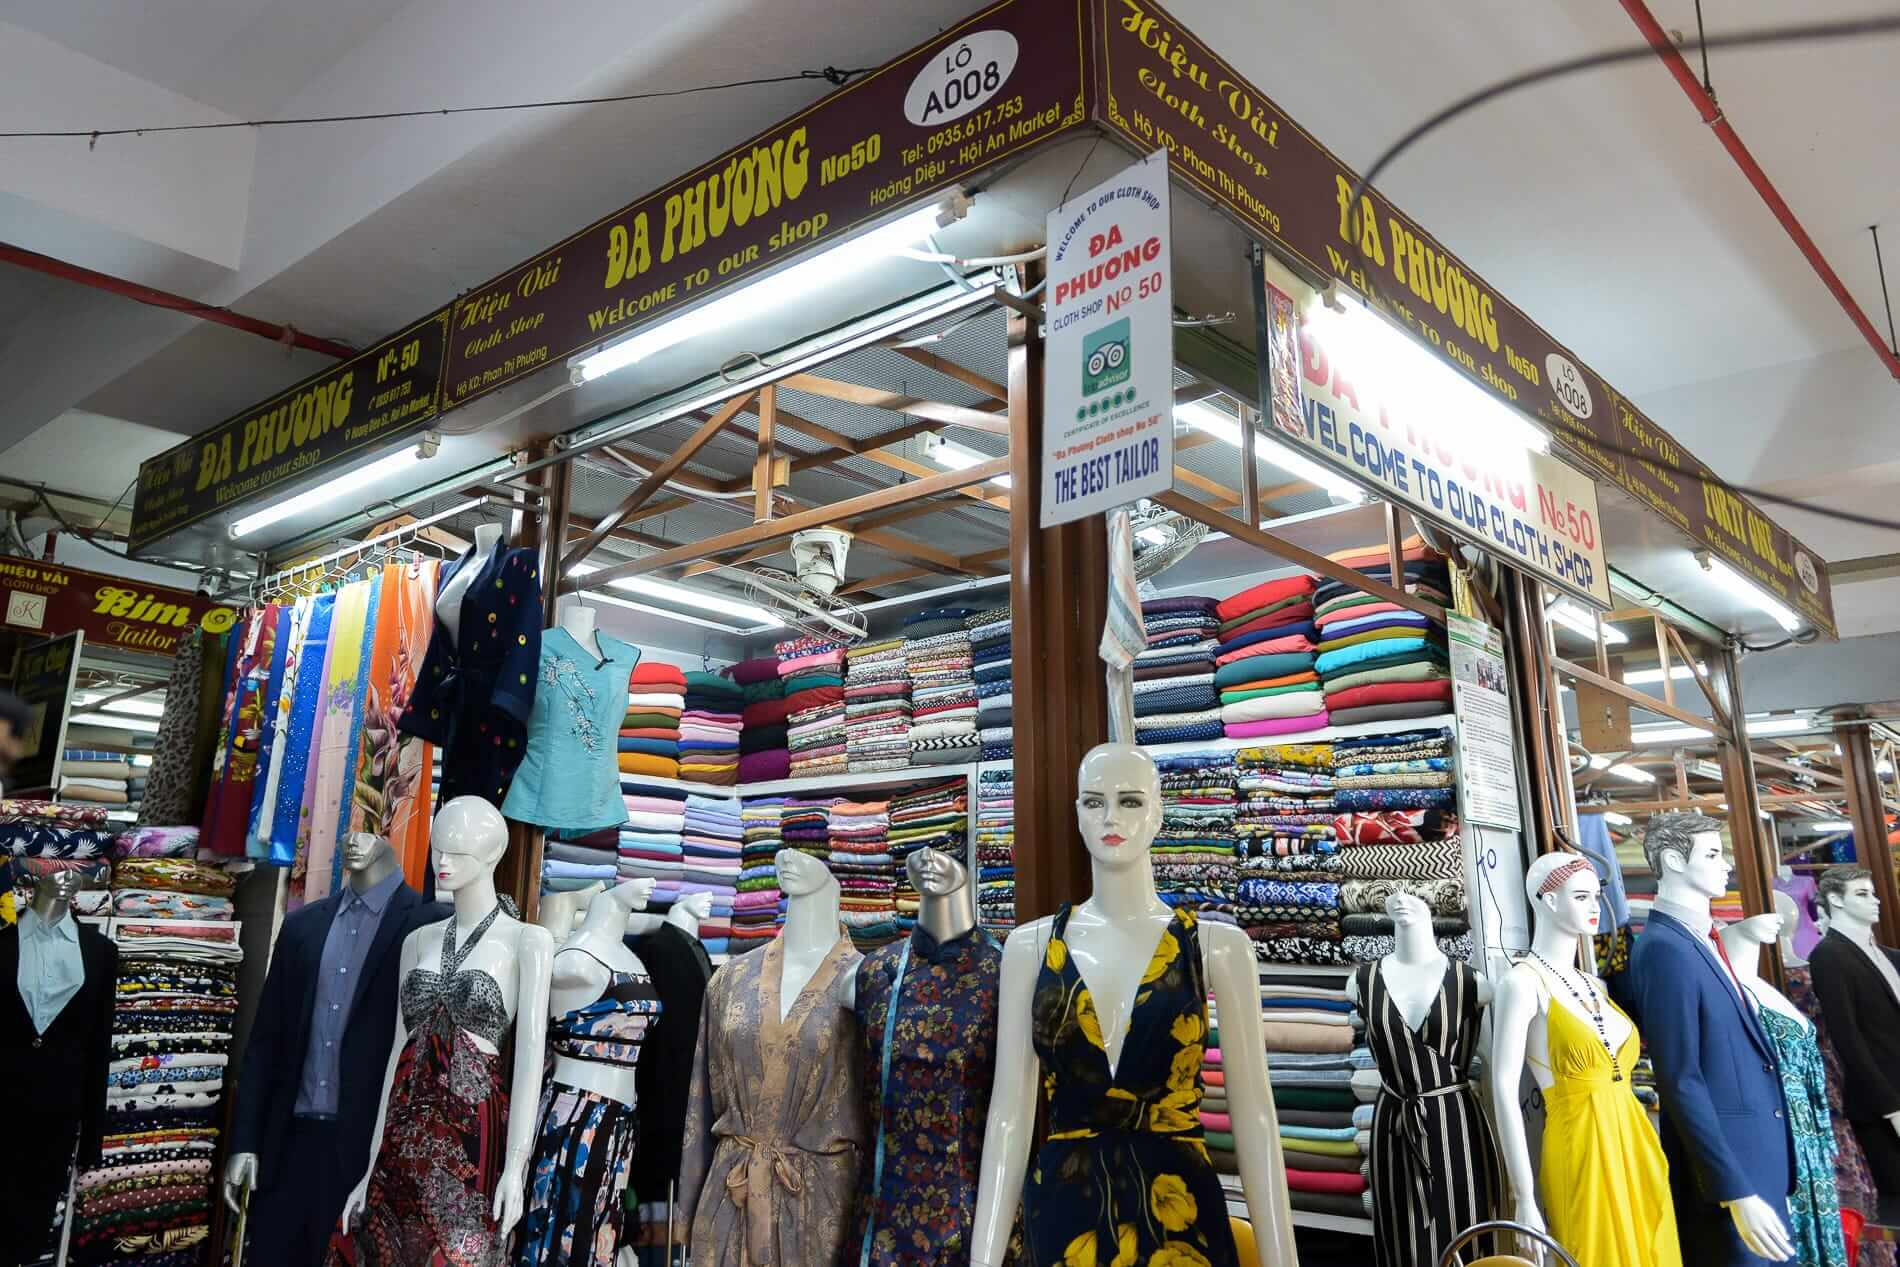 Da Phuong Tailor shop - Hoi An Shopping Guide